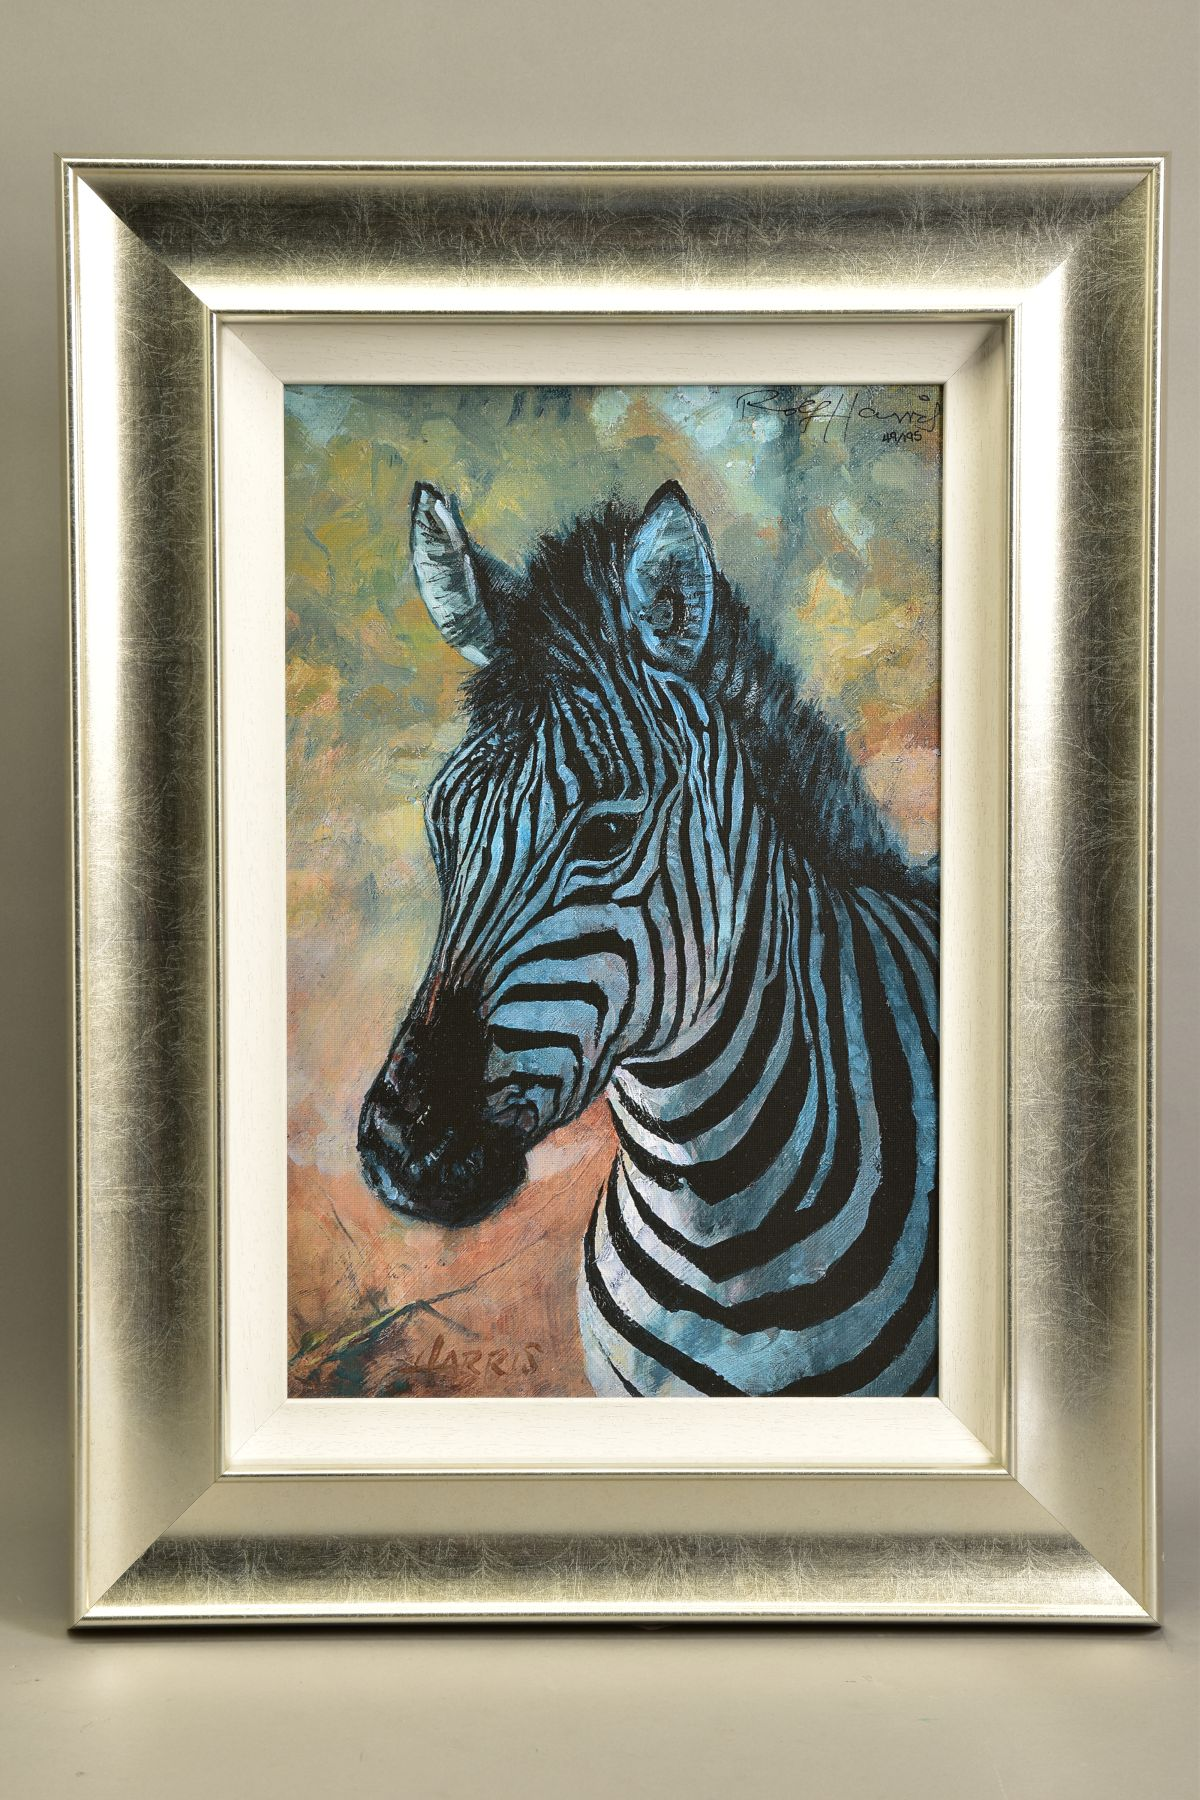 ROLF HARRIS (AUSTRALIAN 1930) 'YOUNG ZEBRA' a limited edition print 49/195, signed top right, no